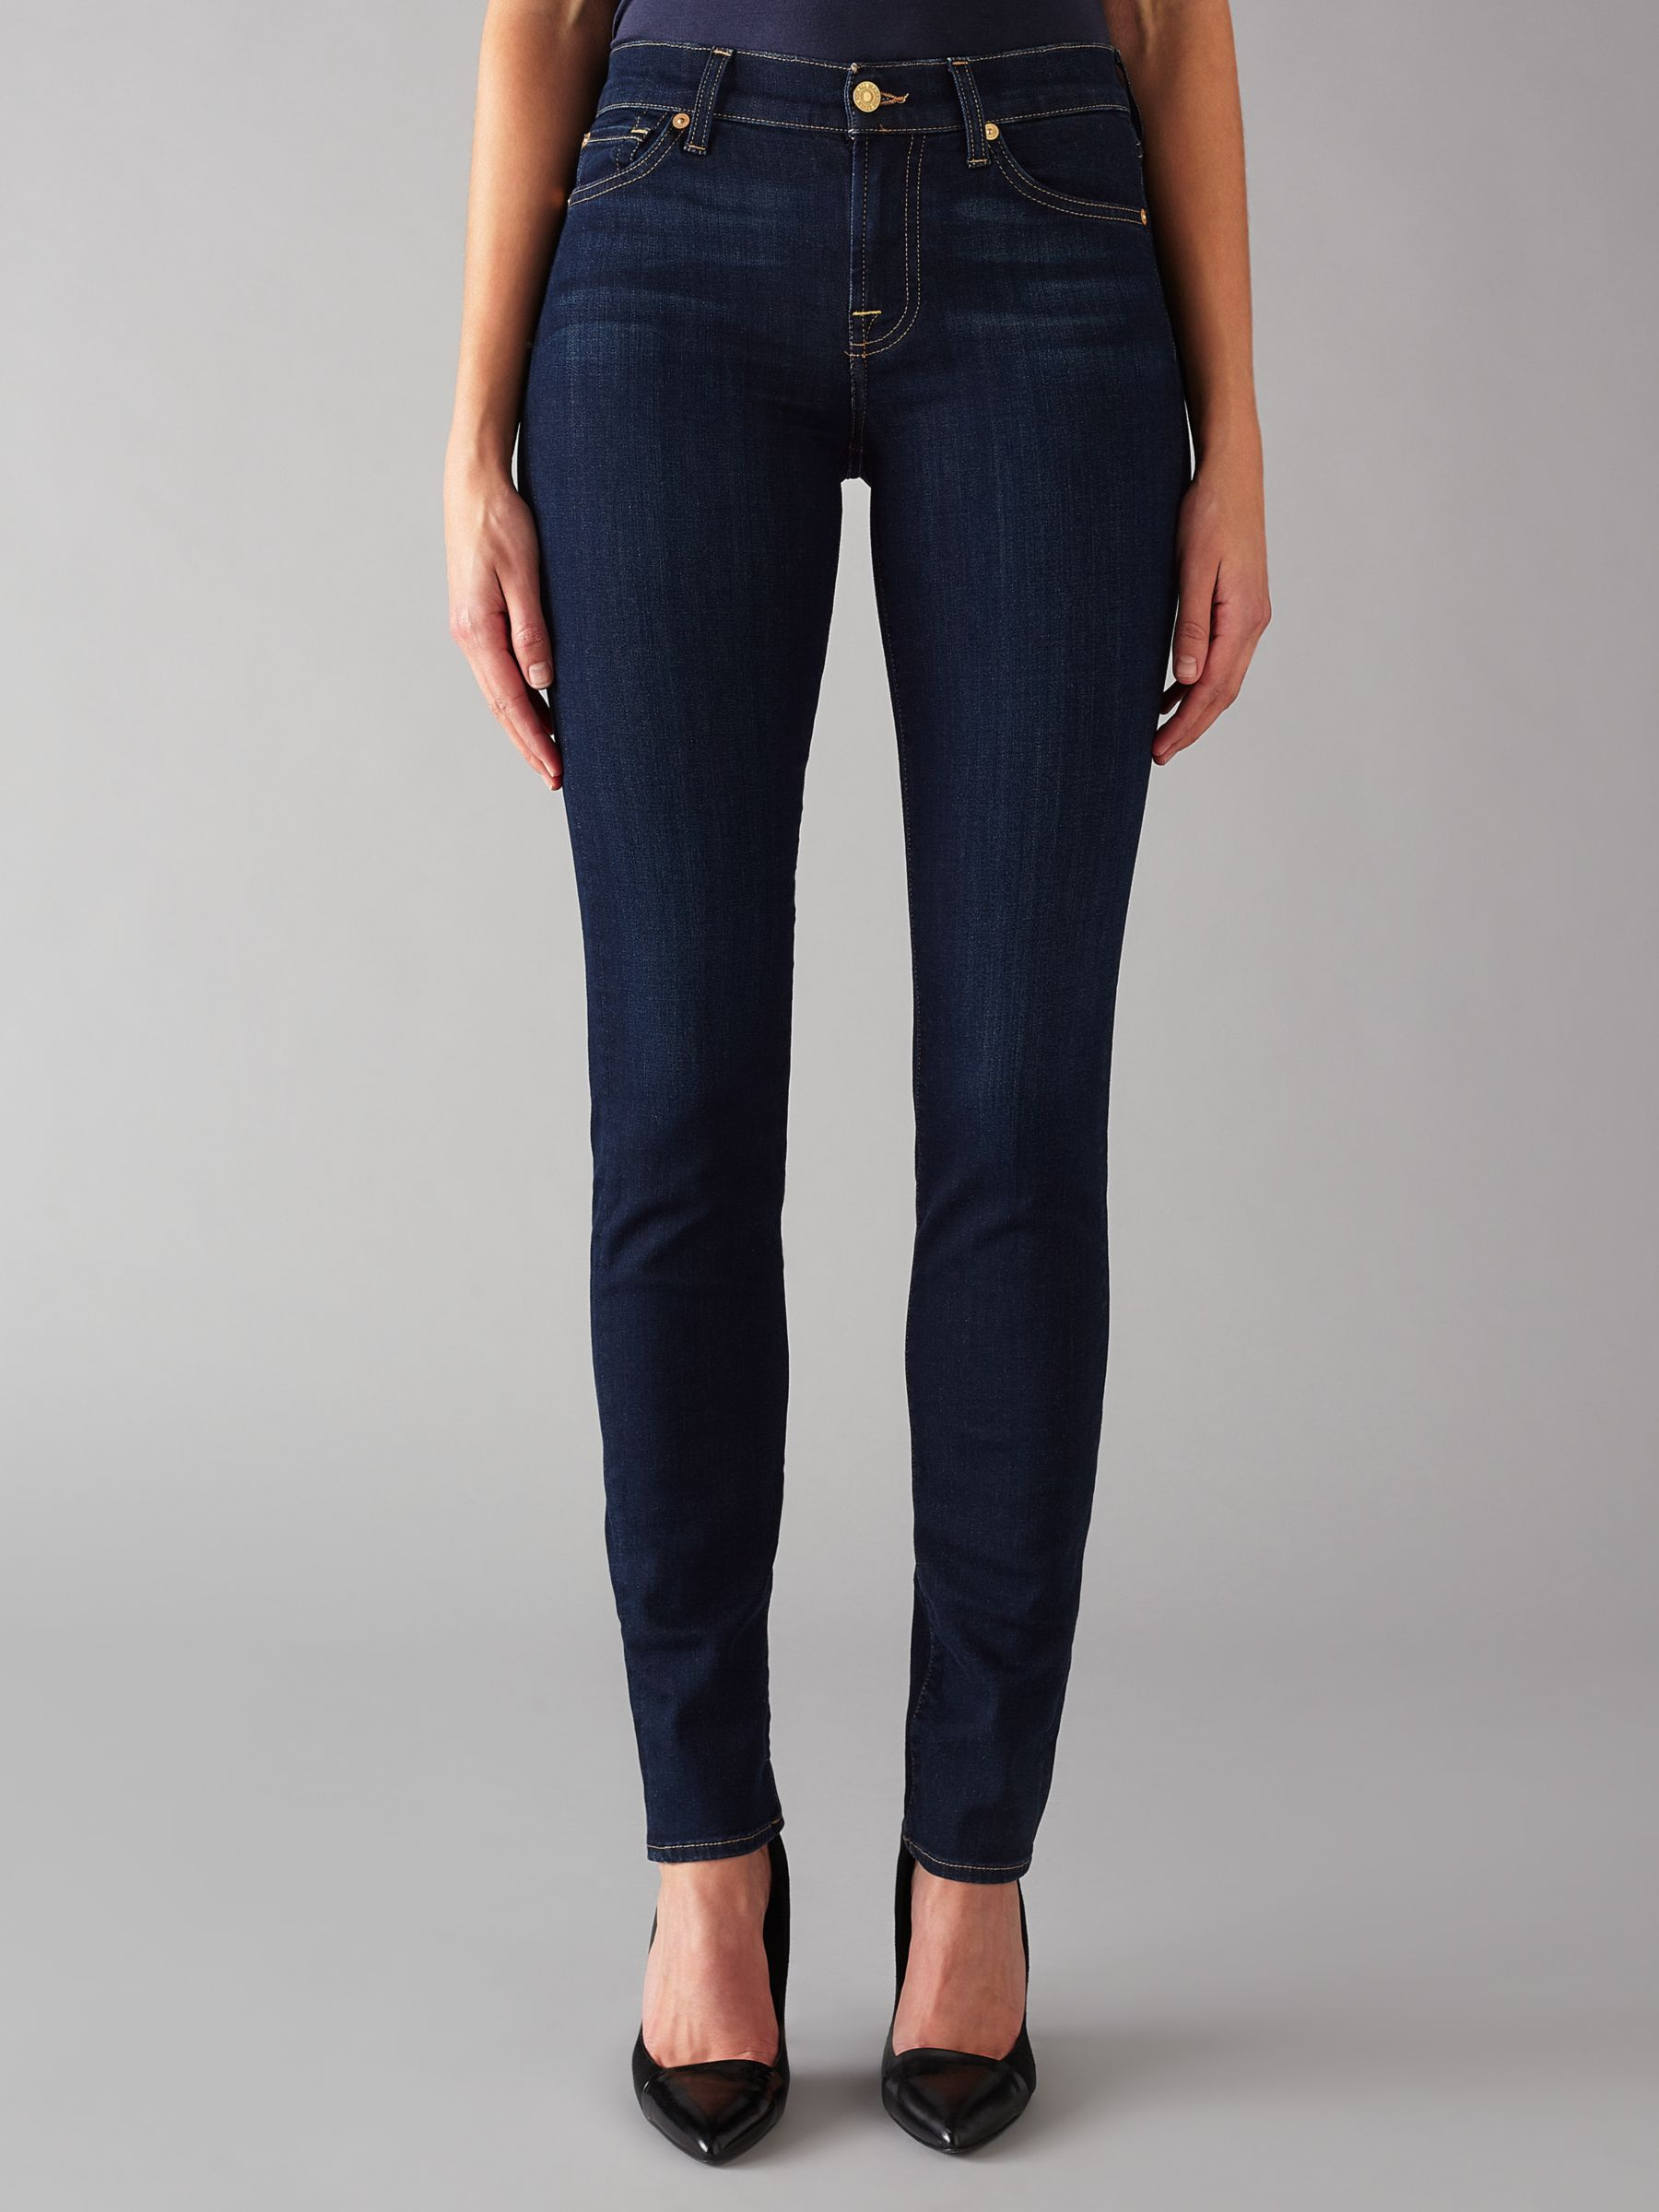 7 For All Mankind 7 For All Mankind Roxanne Mid Rise B(air) Slim Jeans, Rinsed Indigo